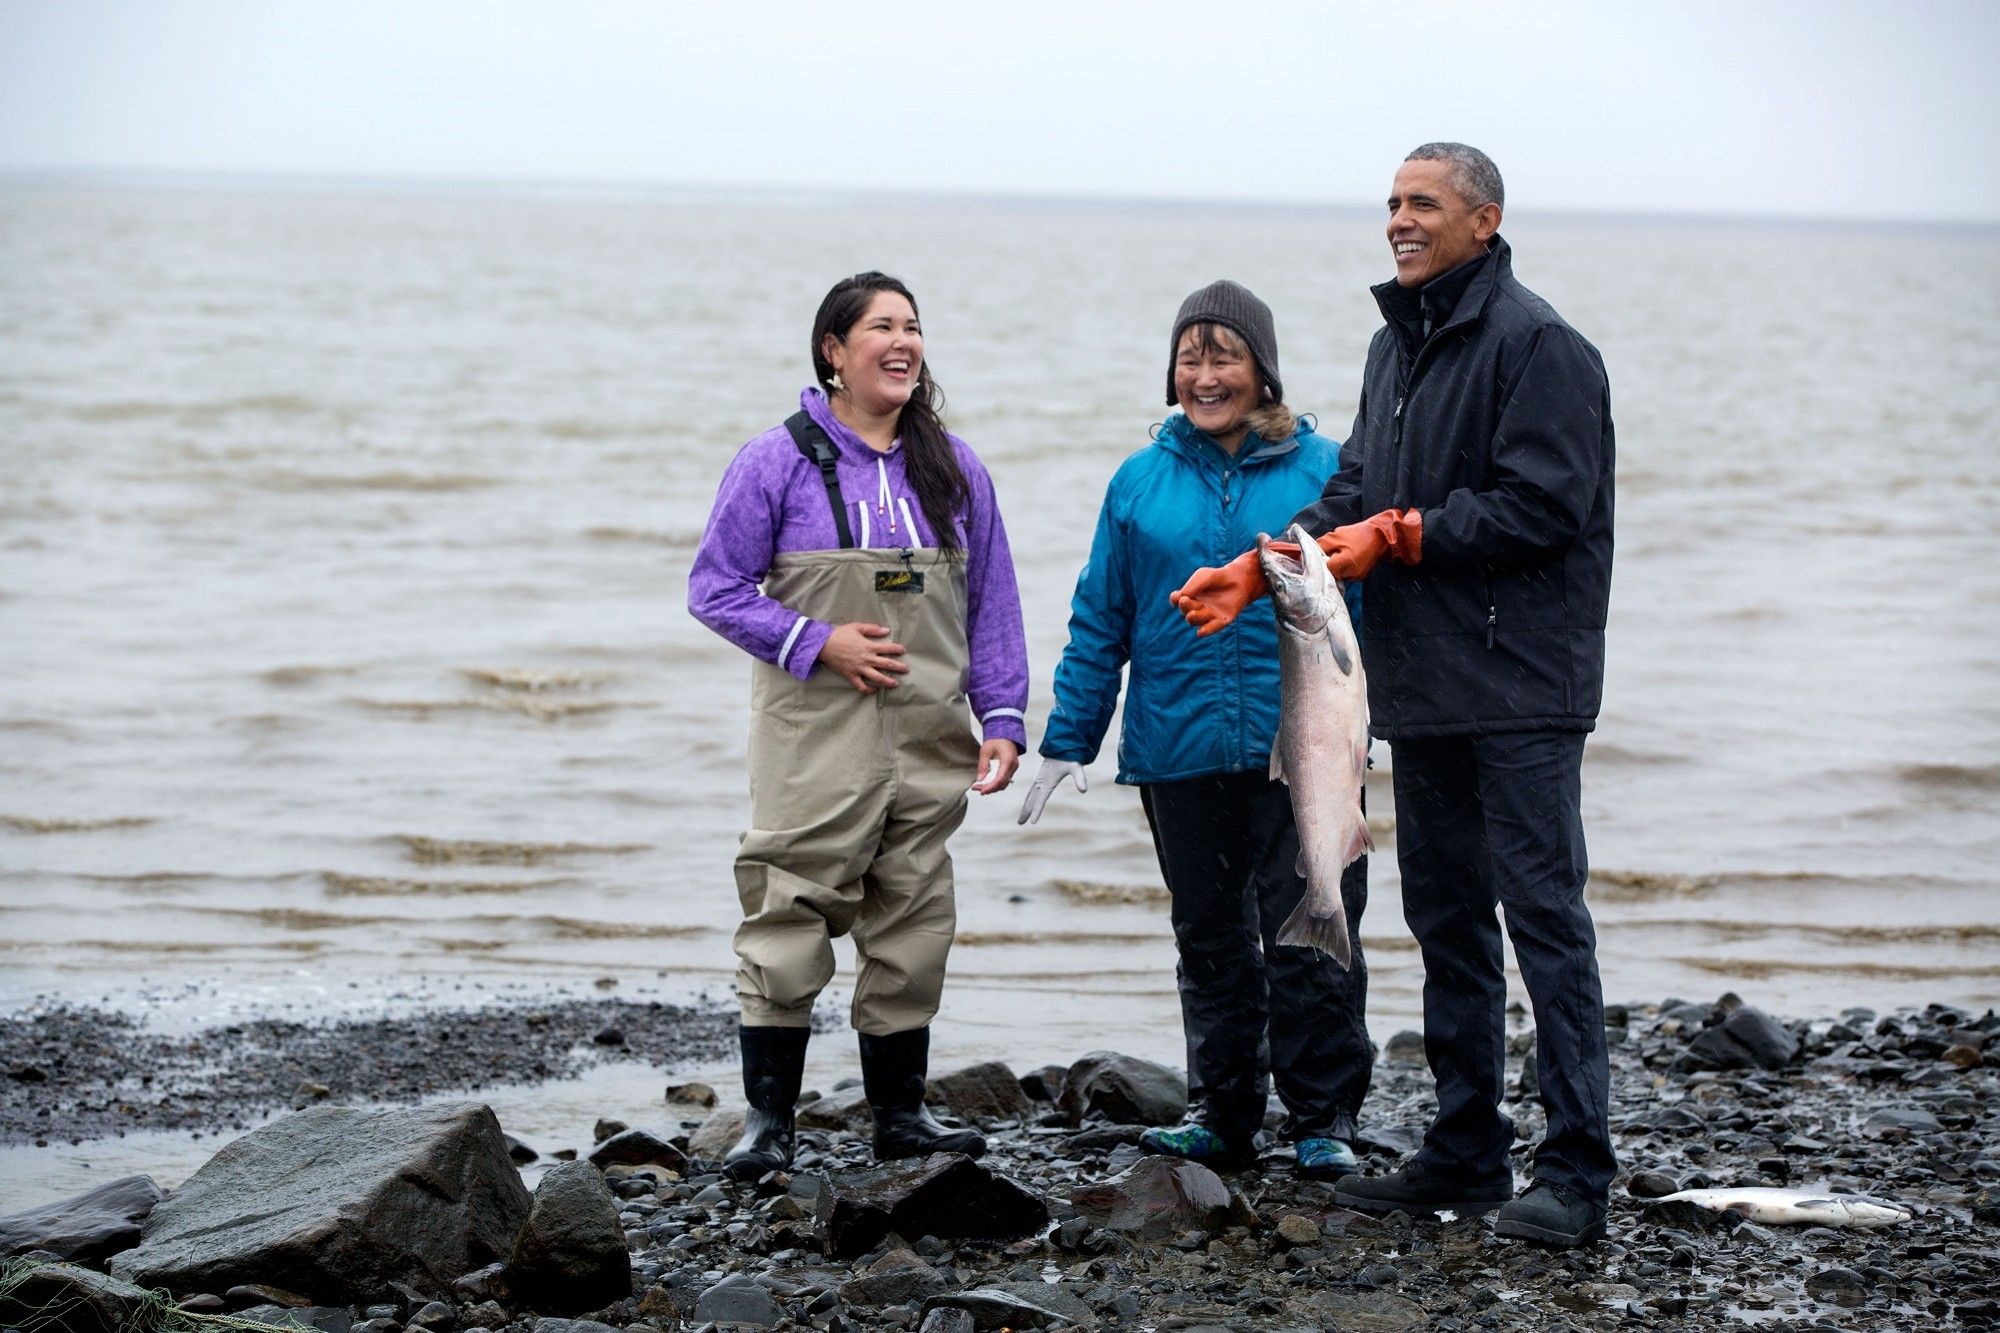 Getting a hands on demonstration from salmon fisherwomen. (Official White House Photo by Pete Souza)